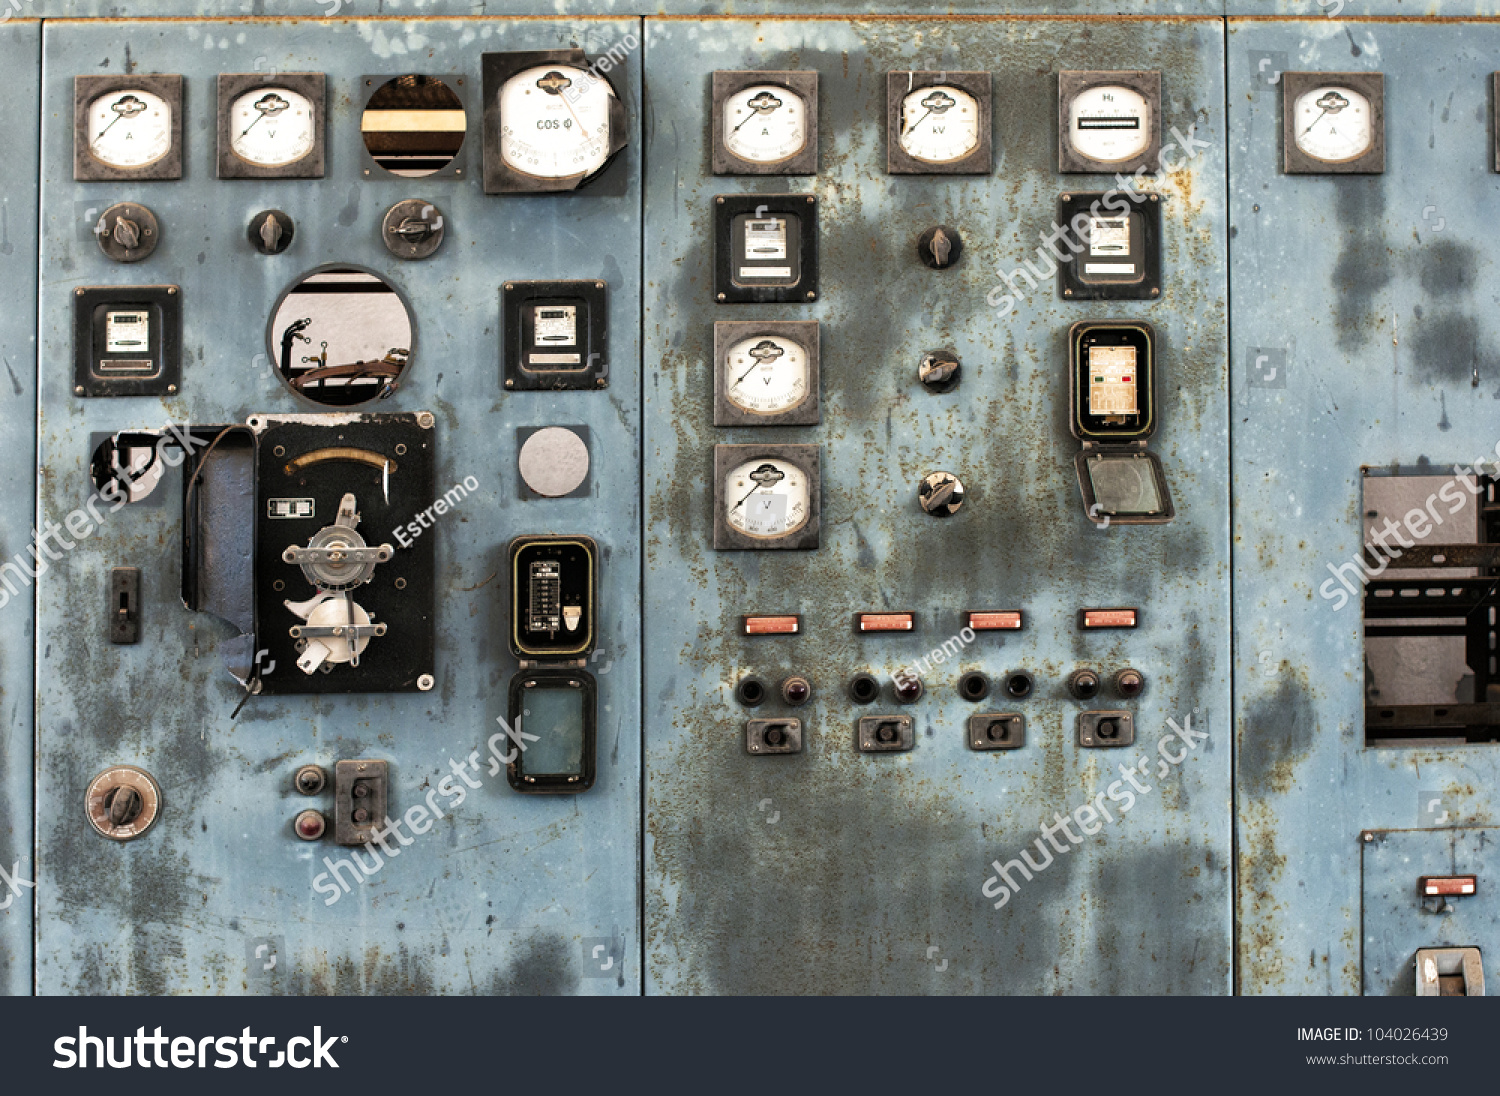 Old Control Panel Levers : Old control panel stock photo shutterstock